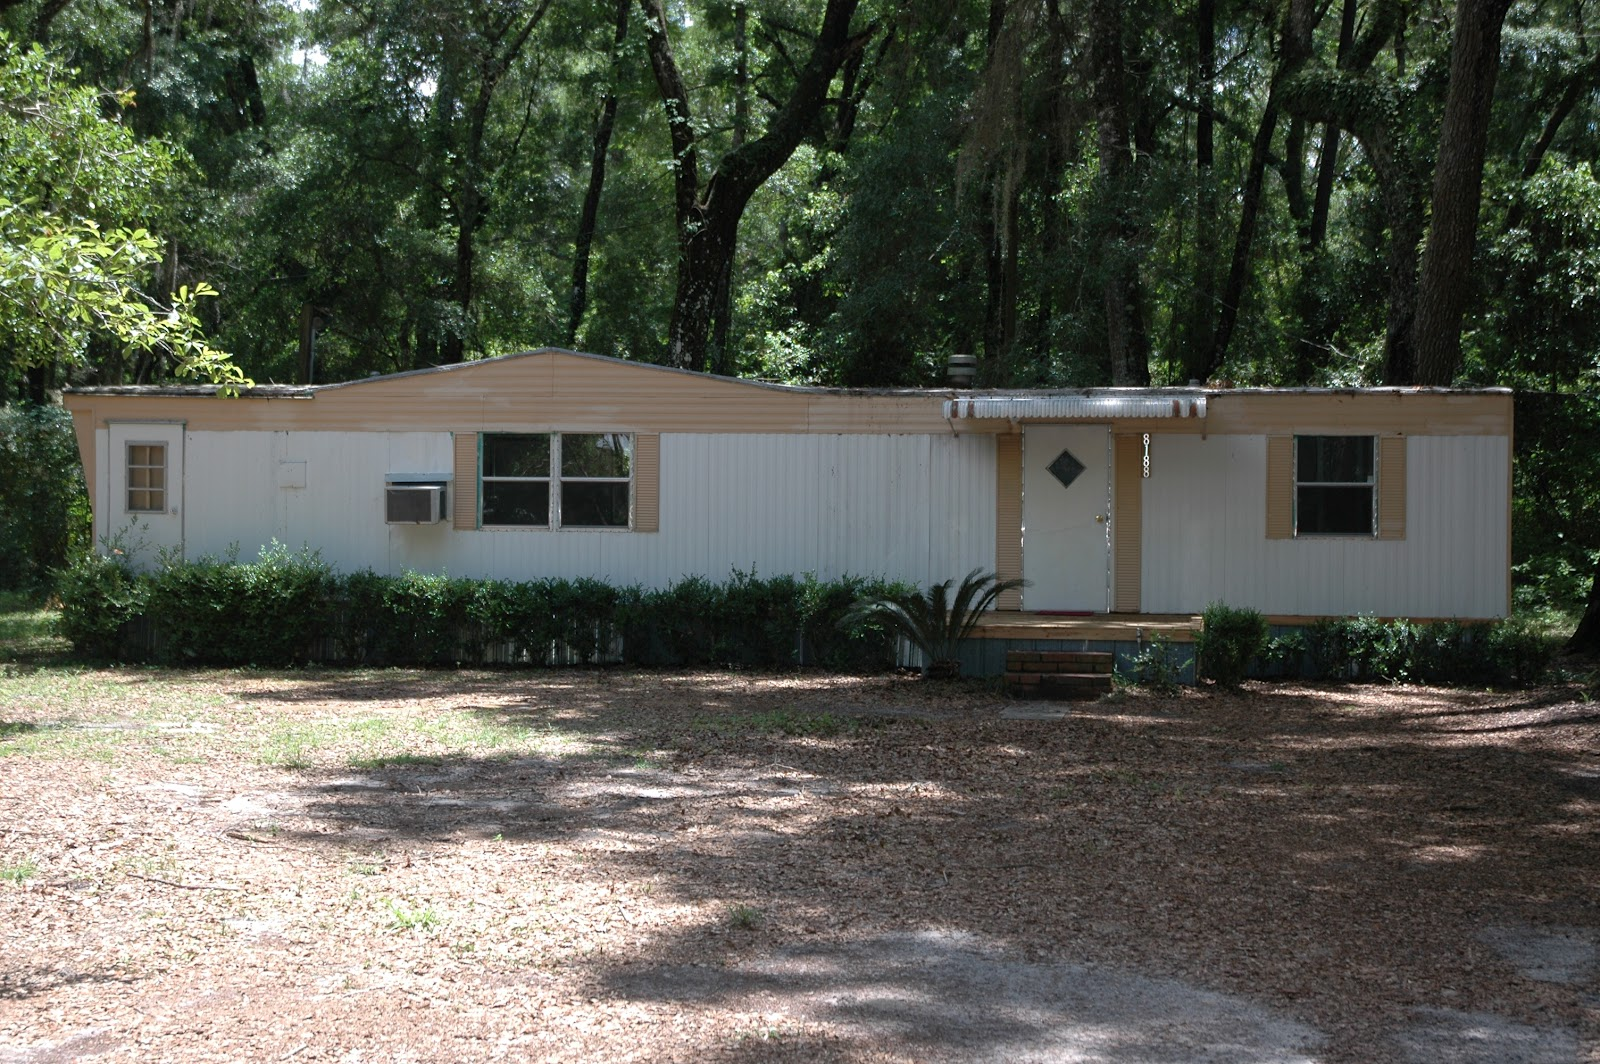 Suwannee valley properties inc owner finance 3bed 2 One bedroom one bath mobile home